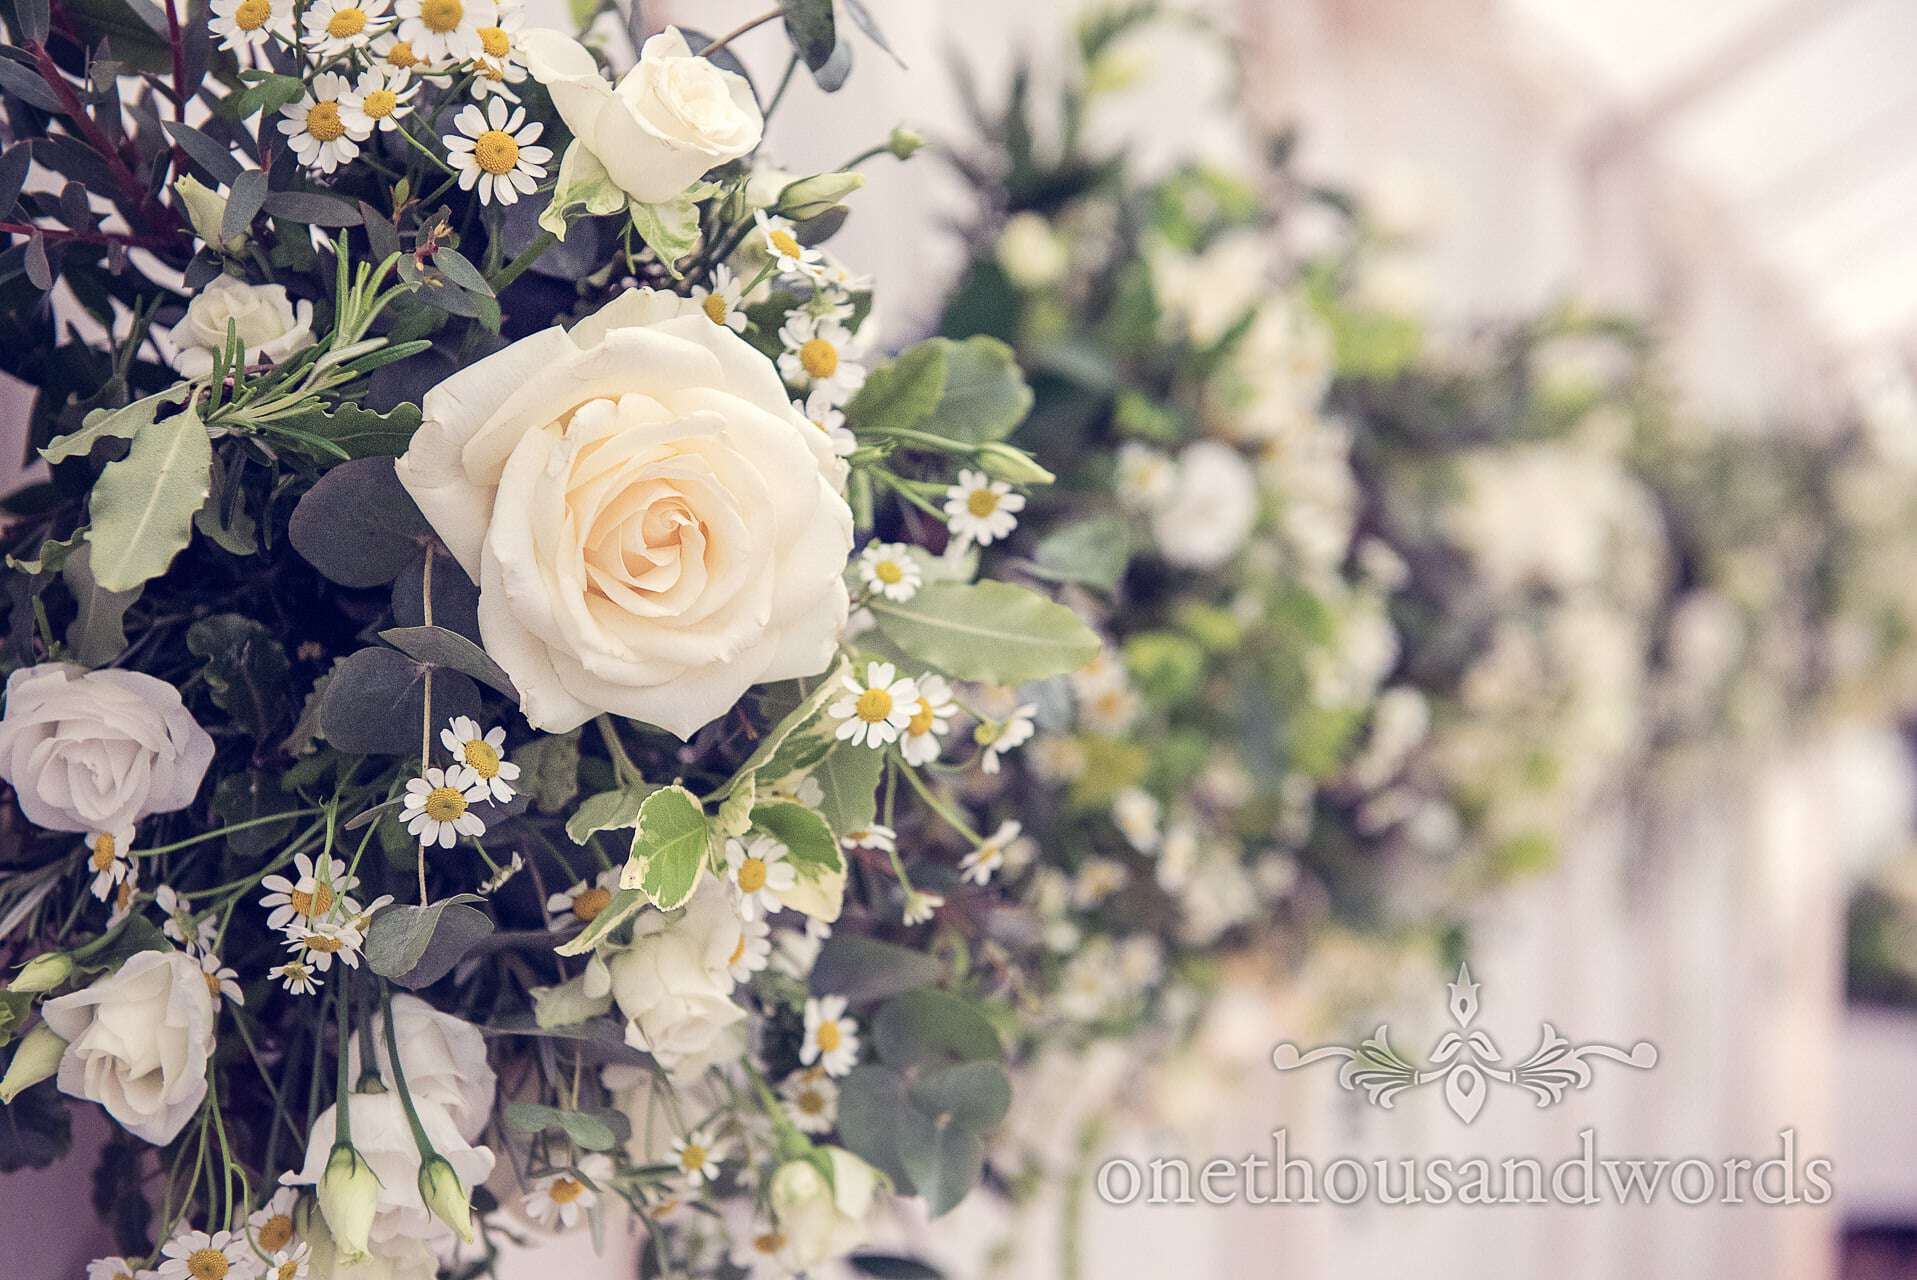 The Oak and The Owl White rose wedding flowers at The Priory Wareham wedding